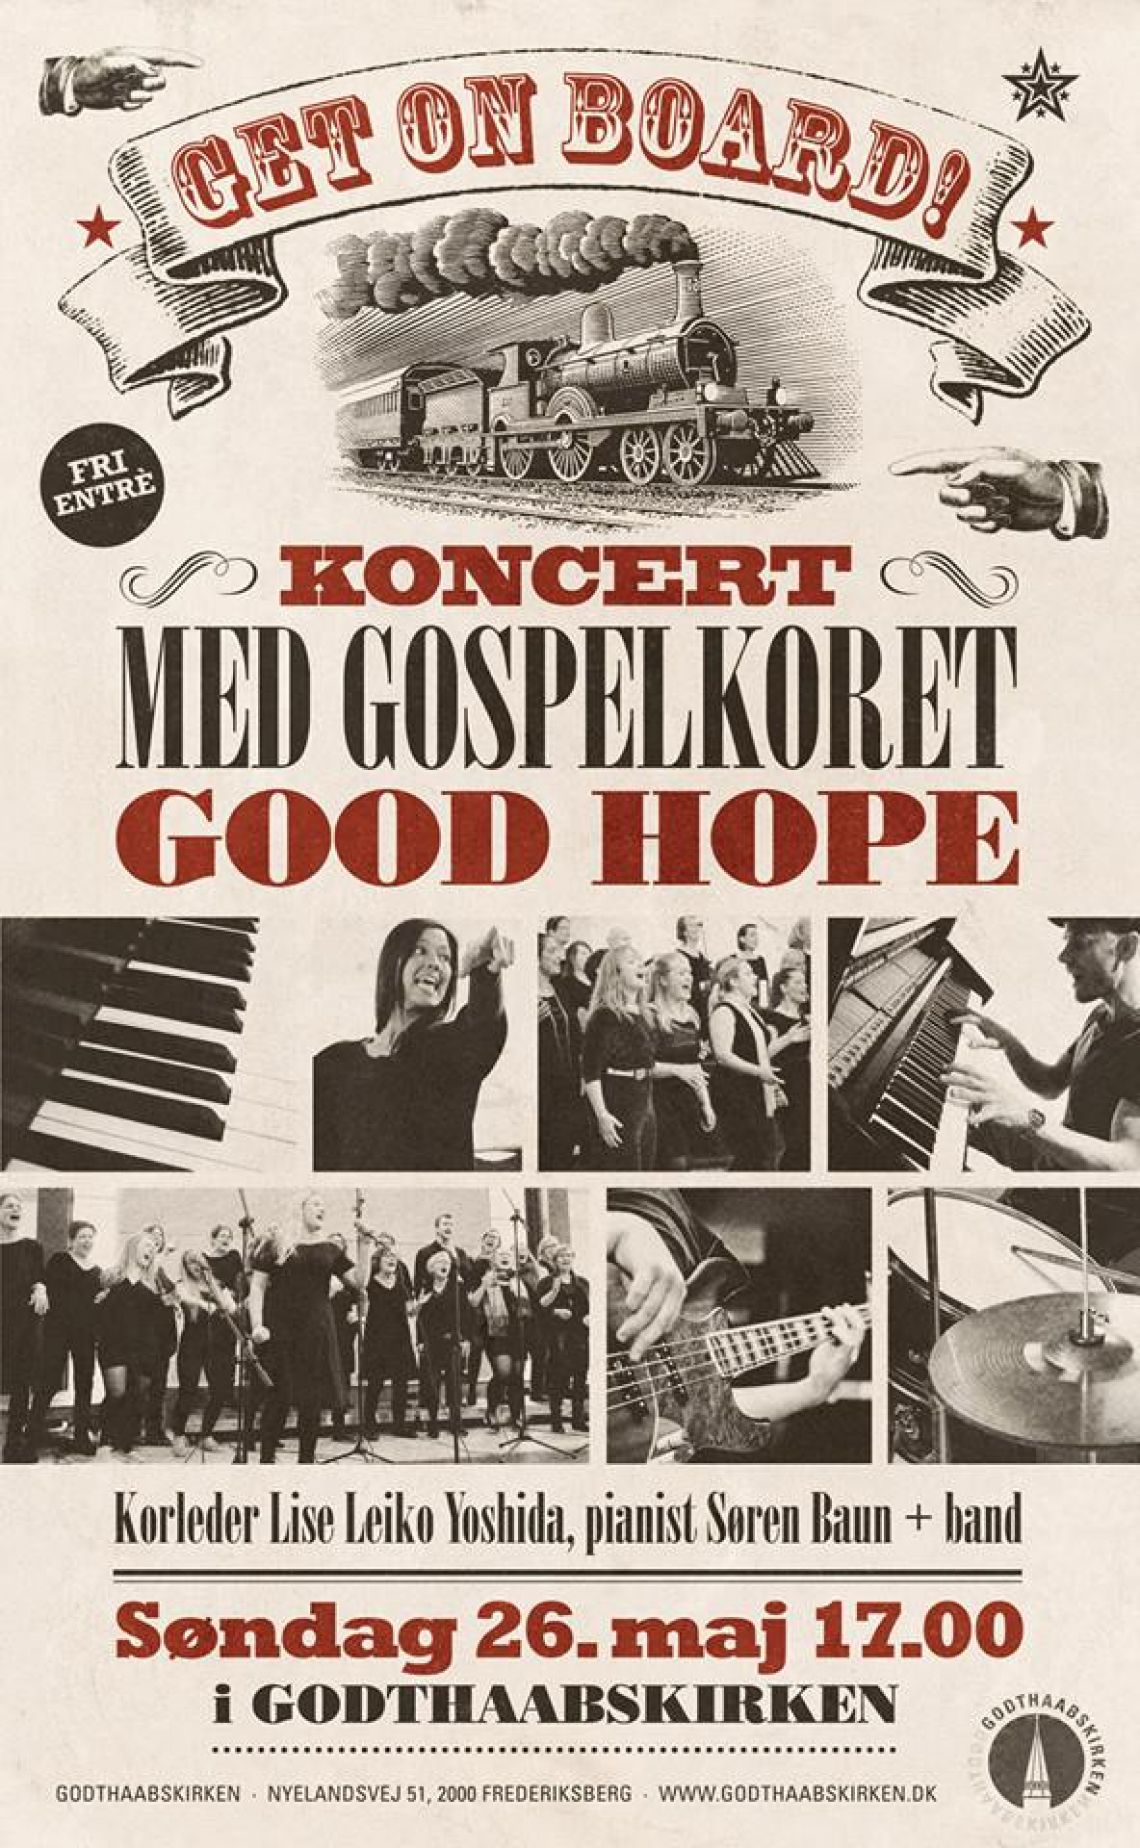 Gospelkoncert: Get on board!